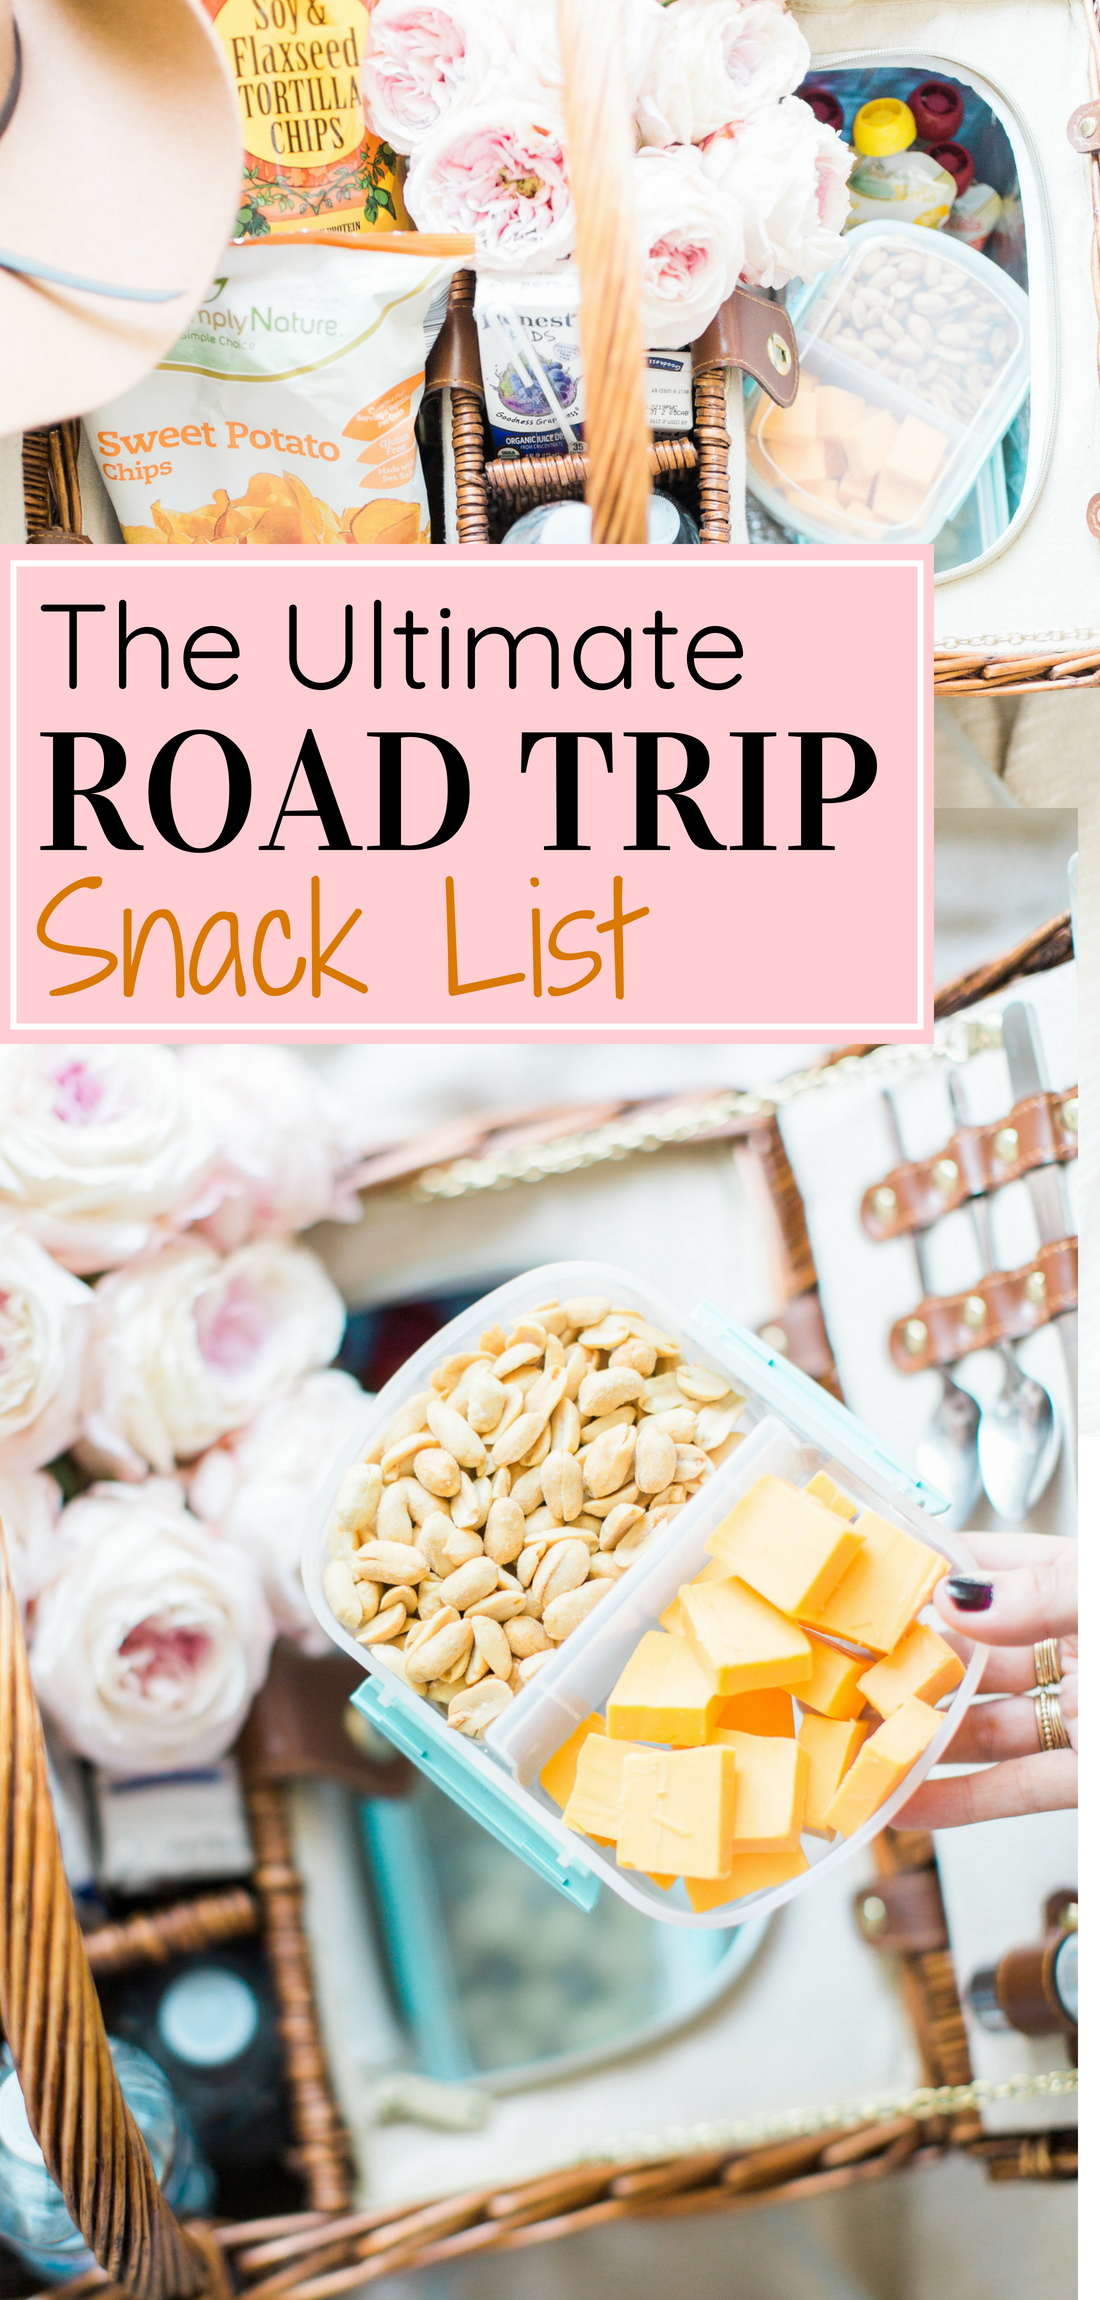 Traveling with your family on a big road trip? These are the best snacks for the whole family, with healthy and homemade options, plus how to pack them, and what you can use to make your road trip just a little bit easier with babies and kids! #roadtrip #roadtripsnacks #familyroadtrip #vacation #travel #travelwithkids #familytravel #familyvacation Click through for the details. | glitterinc.com | @glitterinc